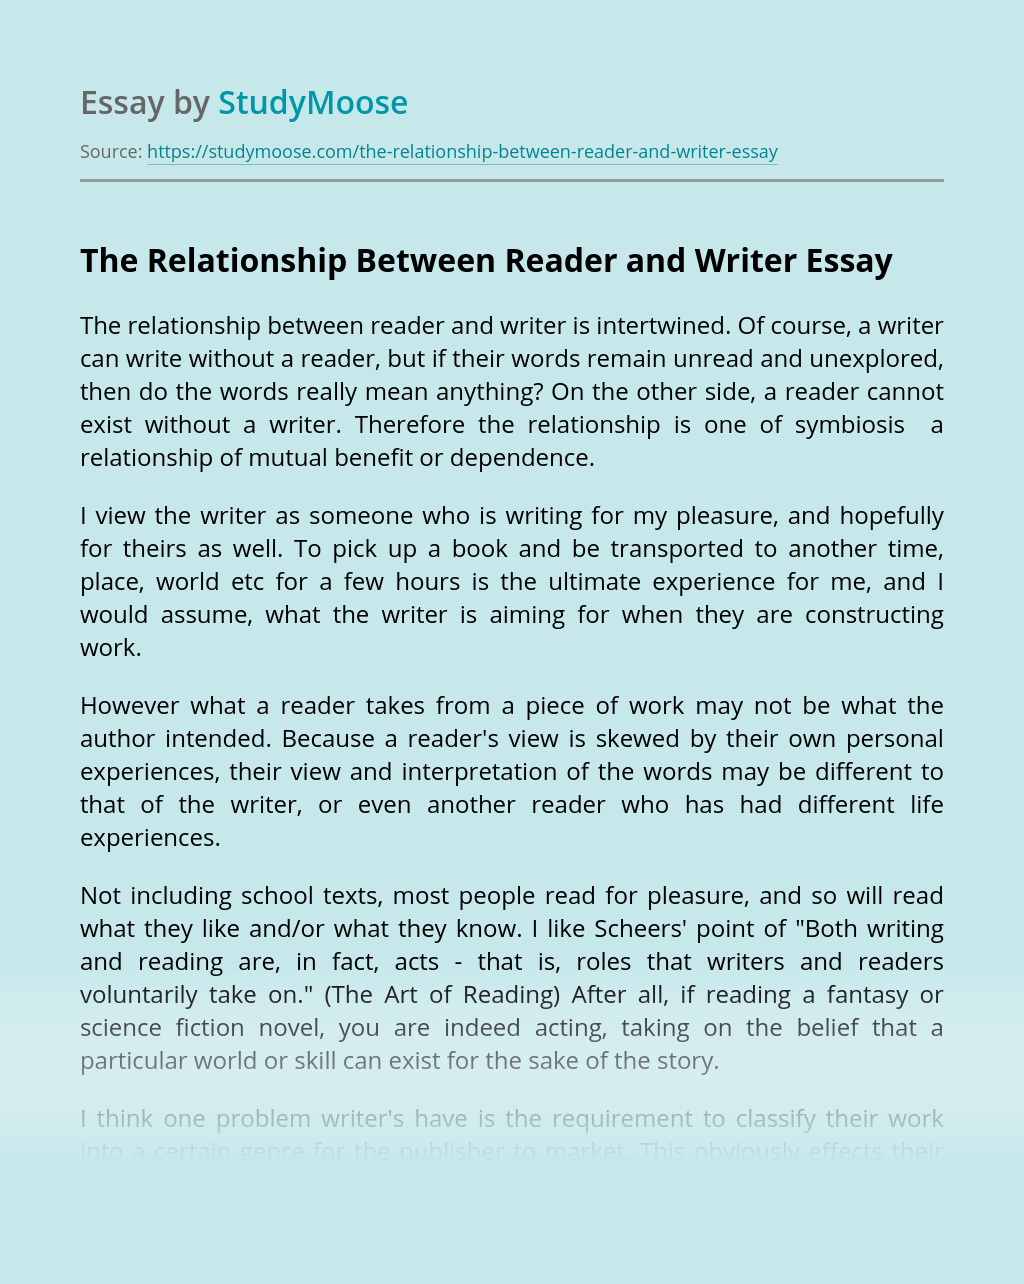 The Relationship Between Reader and Writer